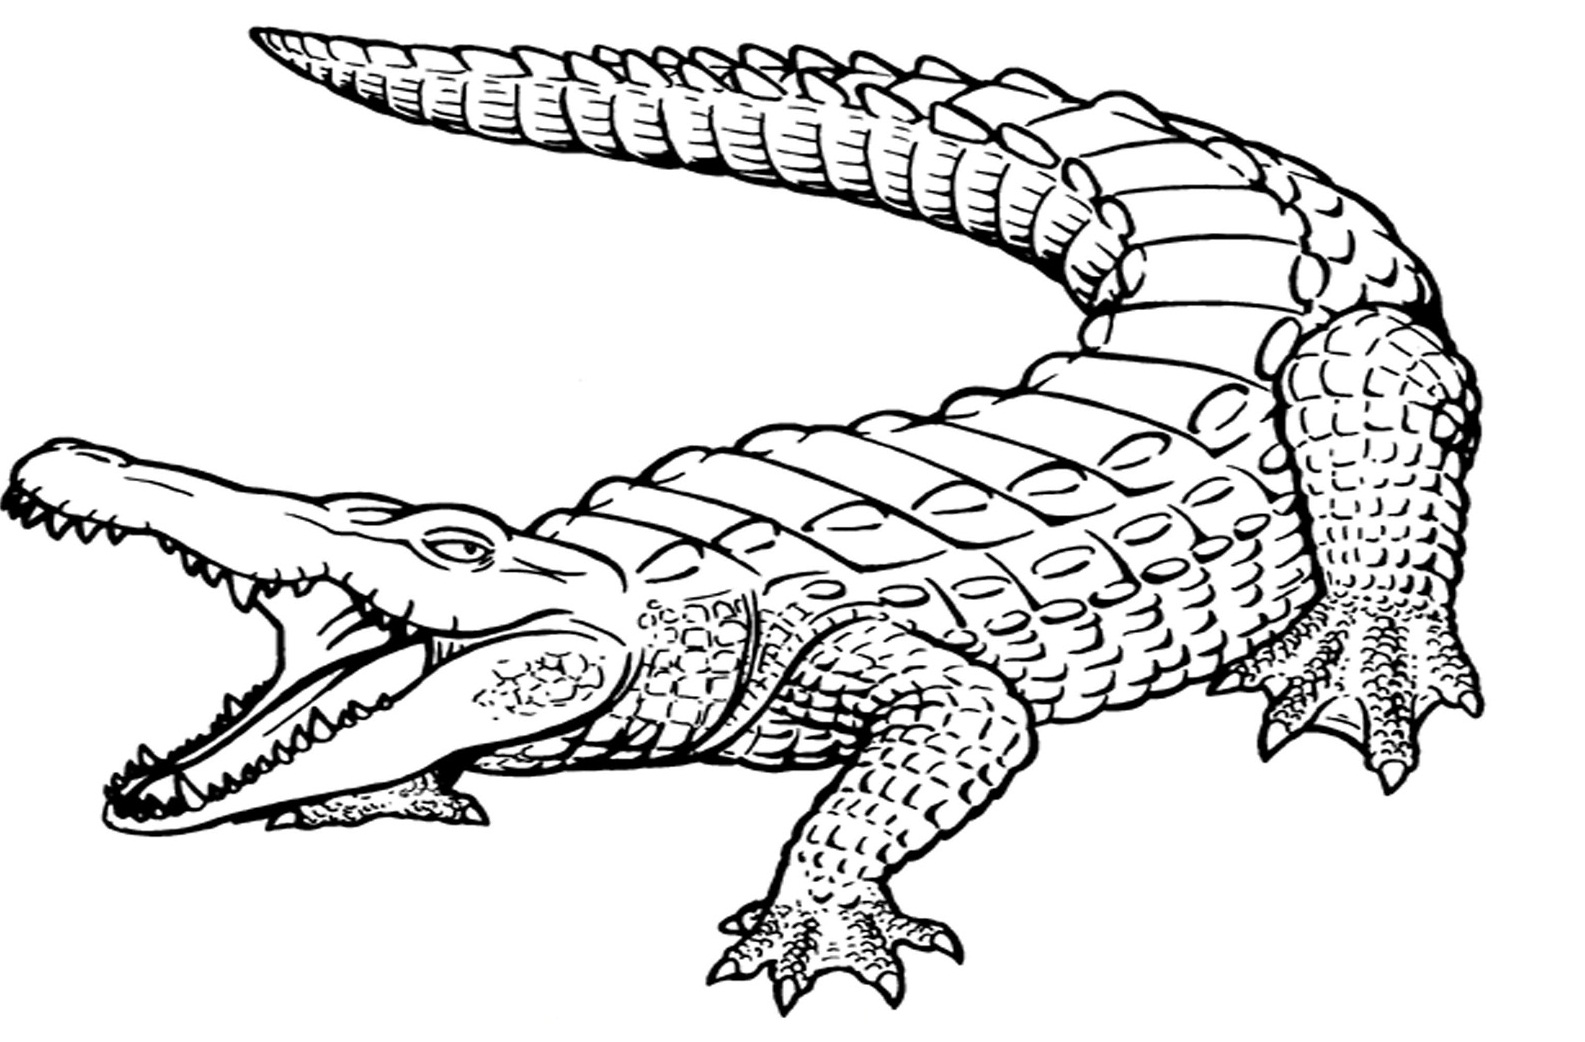 crocodile coloring sheet crocodile drawing for kids at getdrawingscom free for crocodile sheet coloring